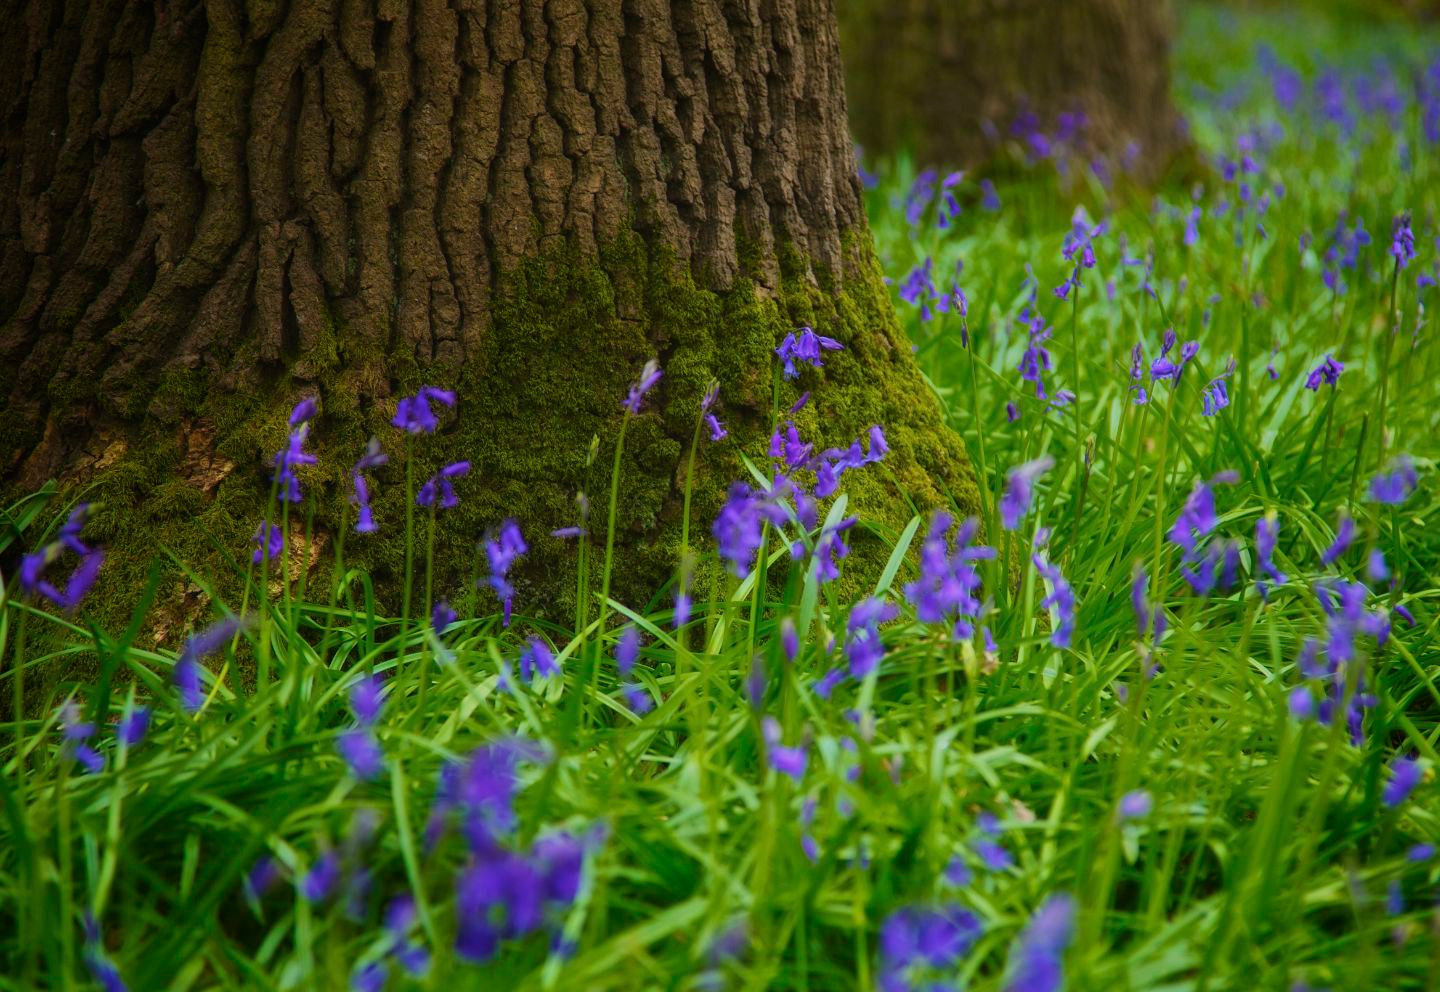 Photograph Tree trunk with blue by Sarah Knights on 500px